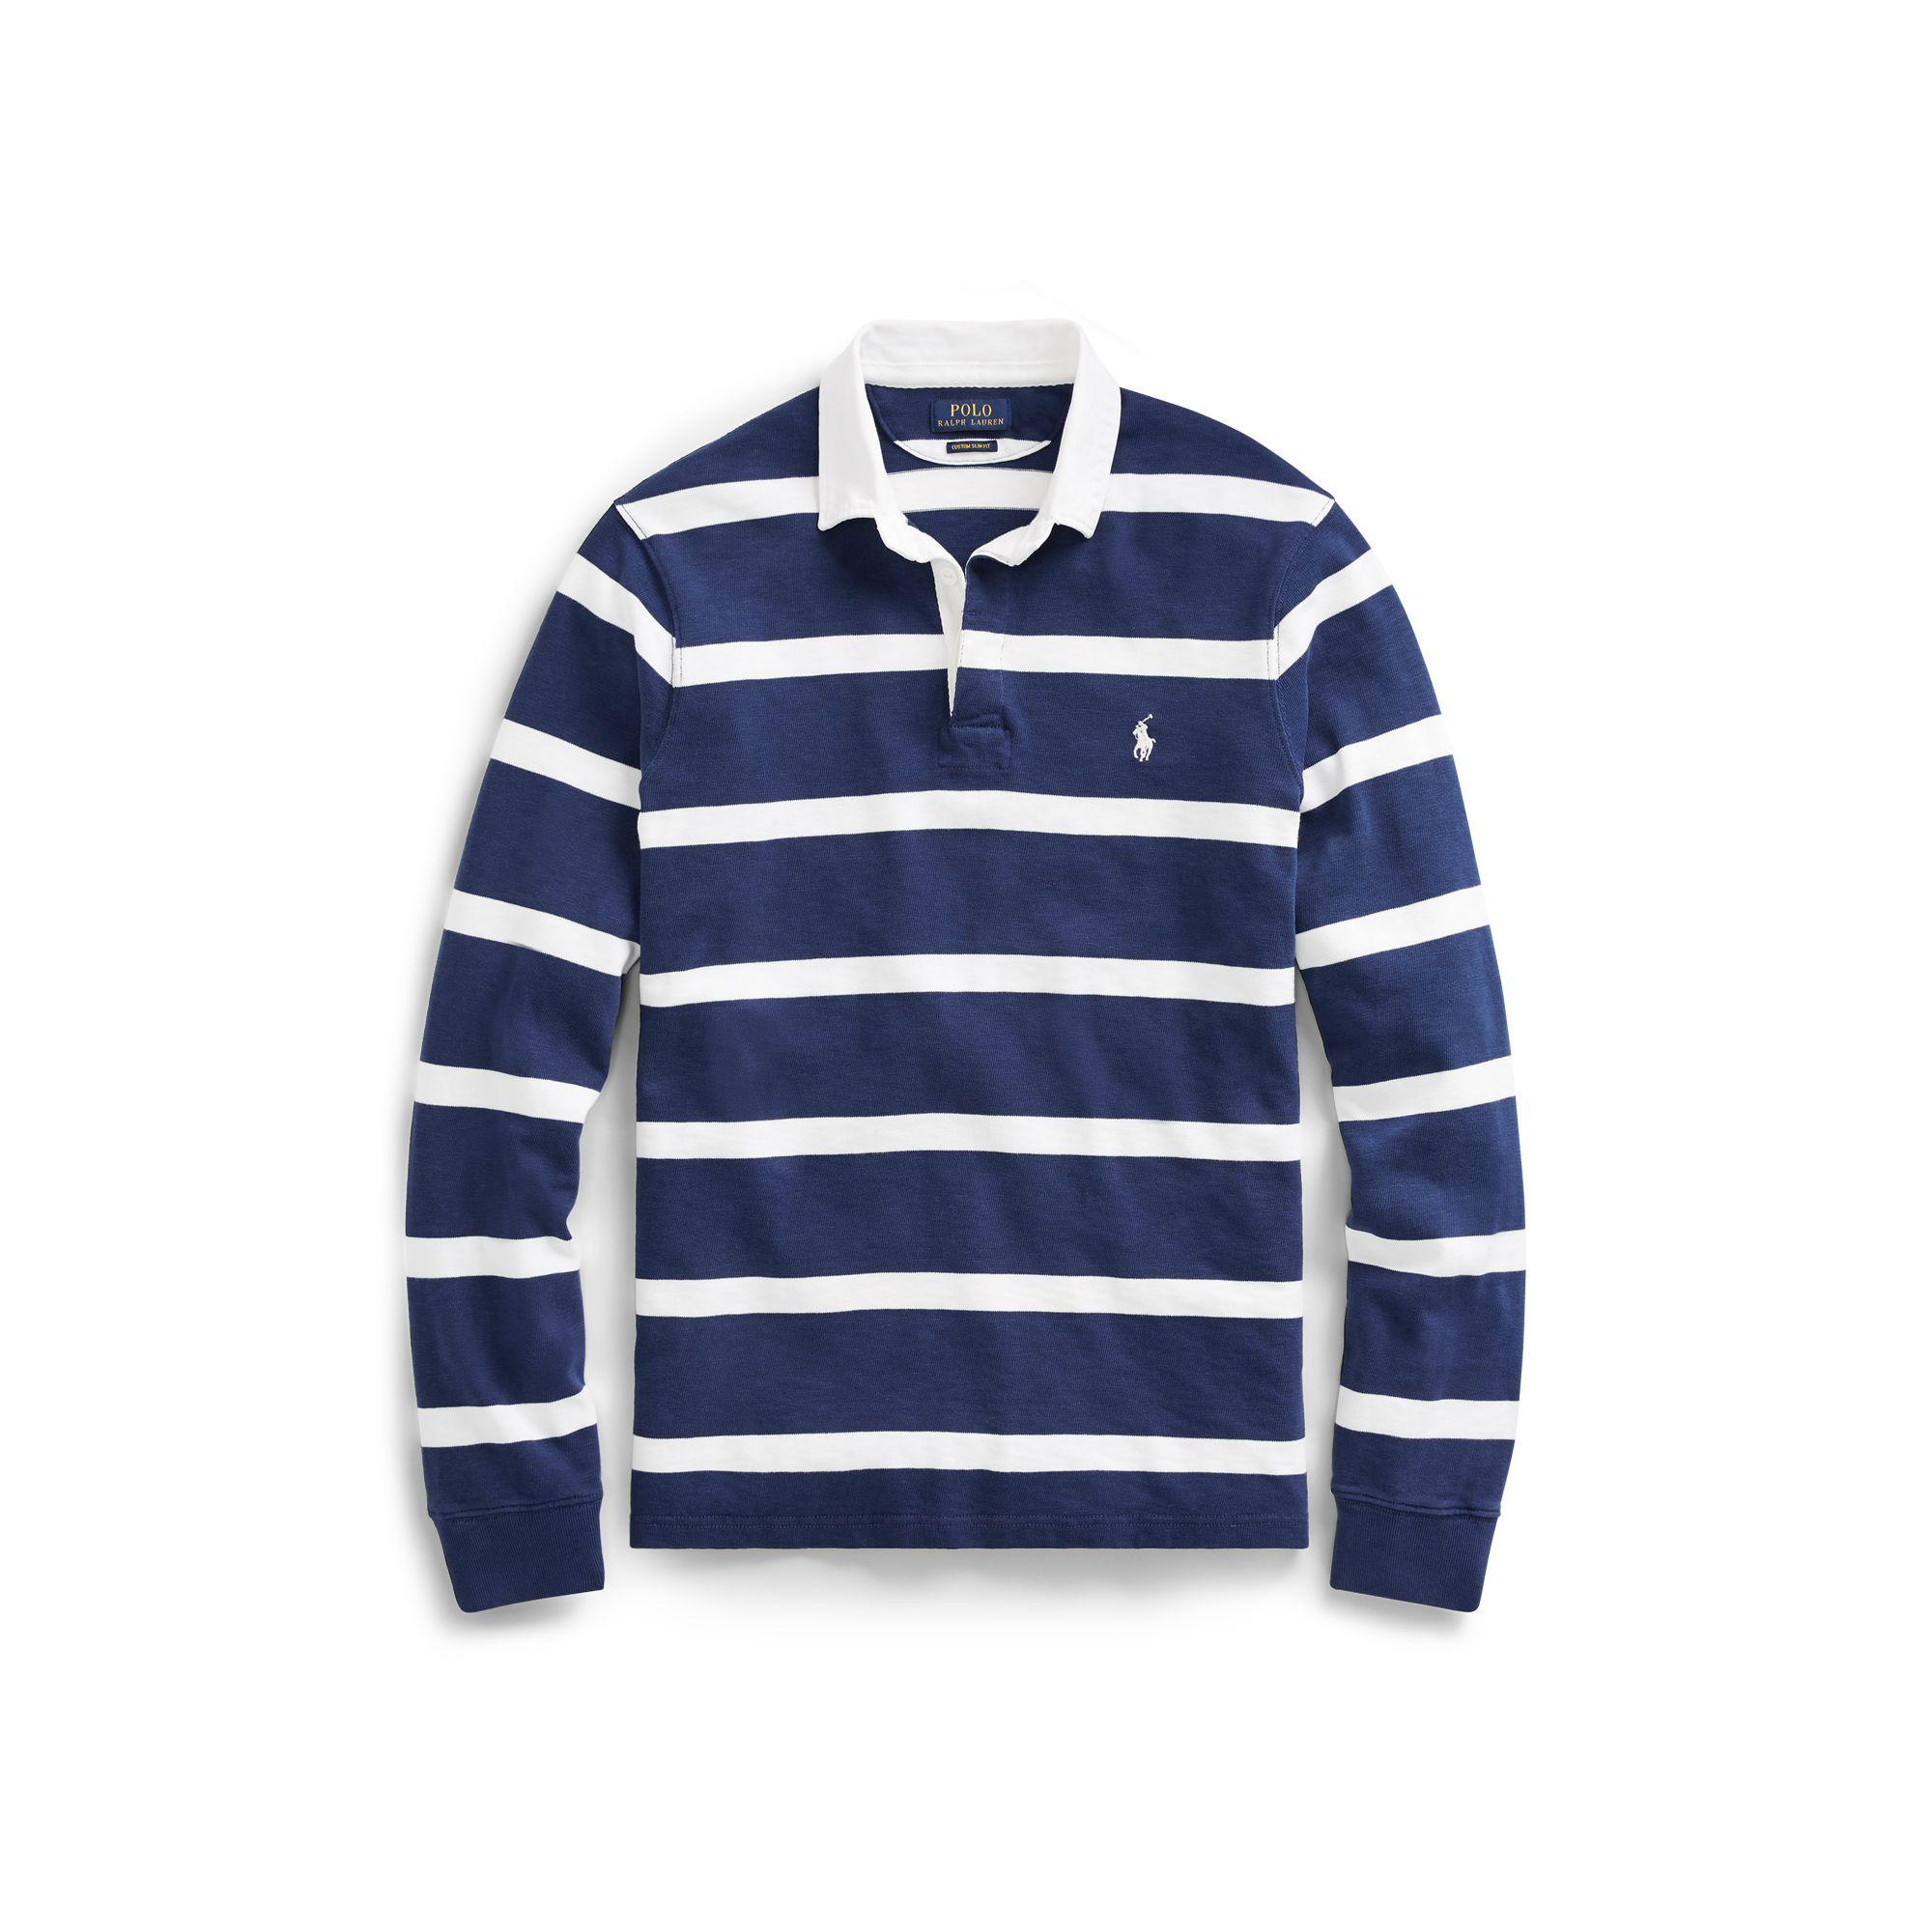 2f116f6b8 ... low price polo ralph lauren the iconic rugby shirt in blue for men lyst  5fa38 1ea0e